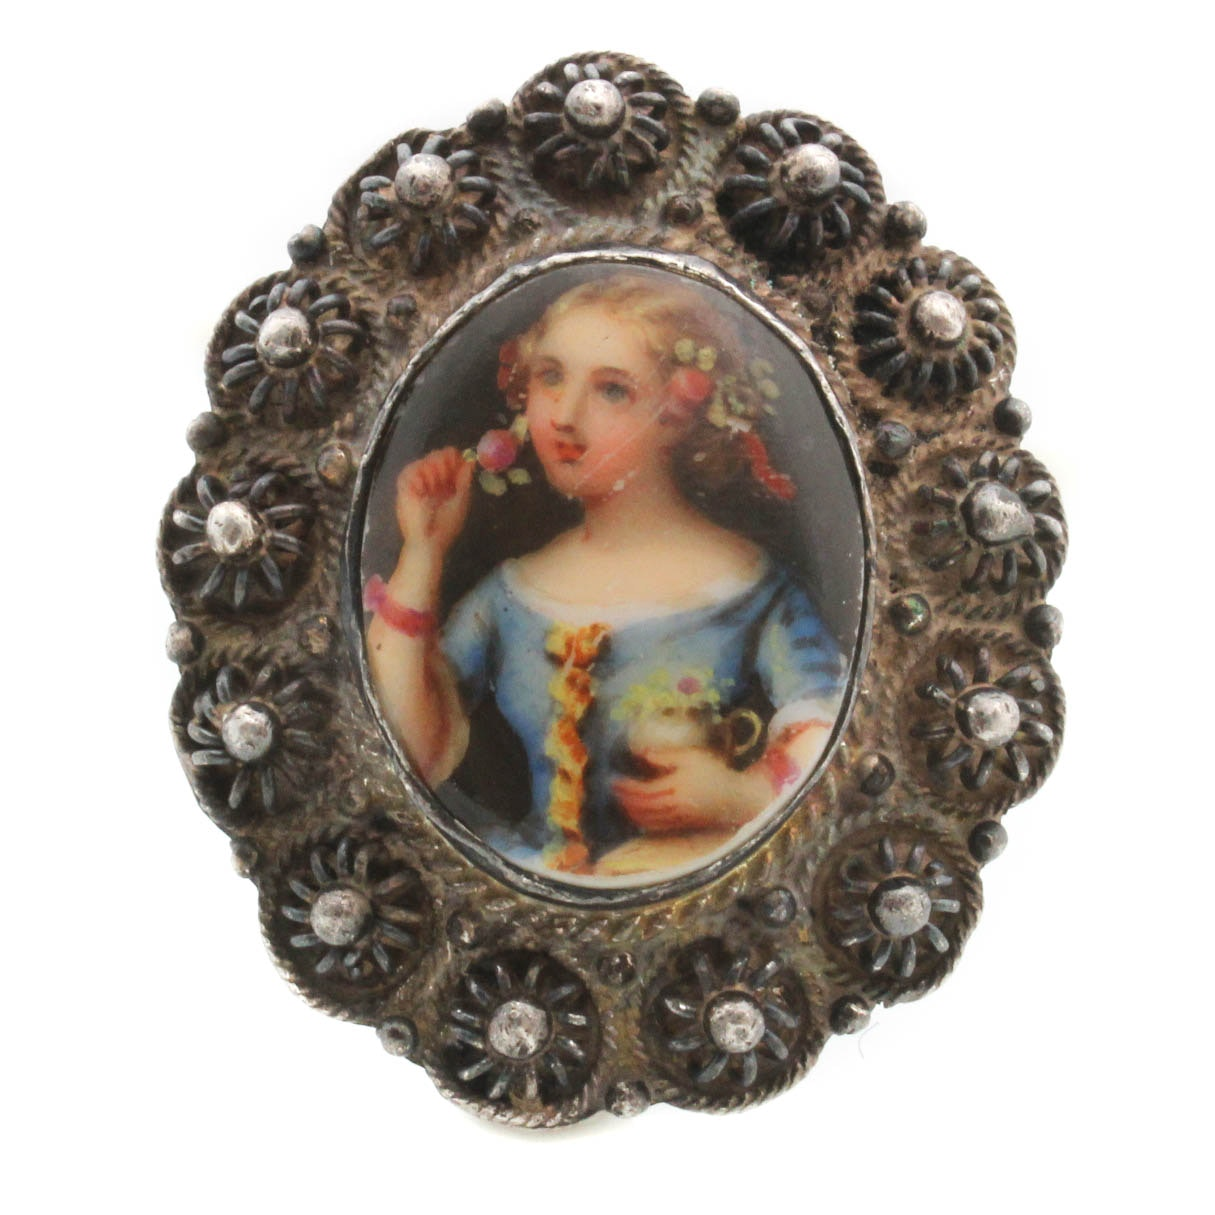 Antique Sterling Silver Hand Painted Porcelain Brooch